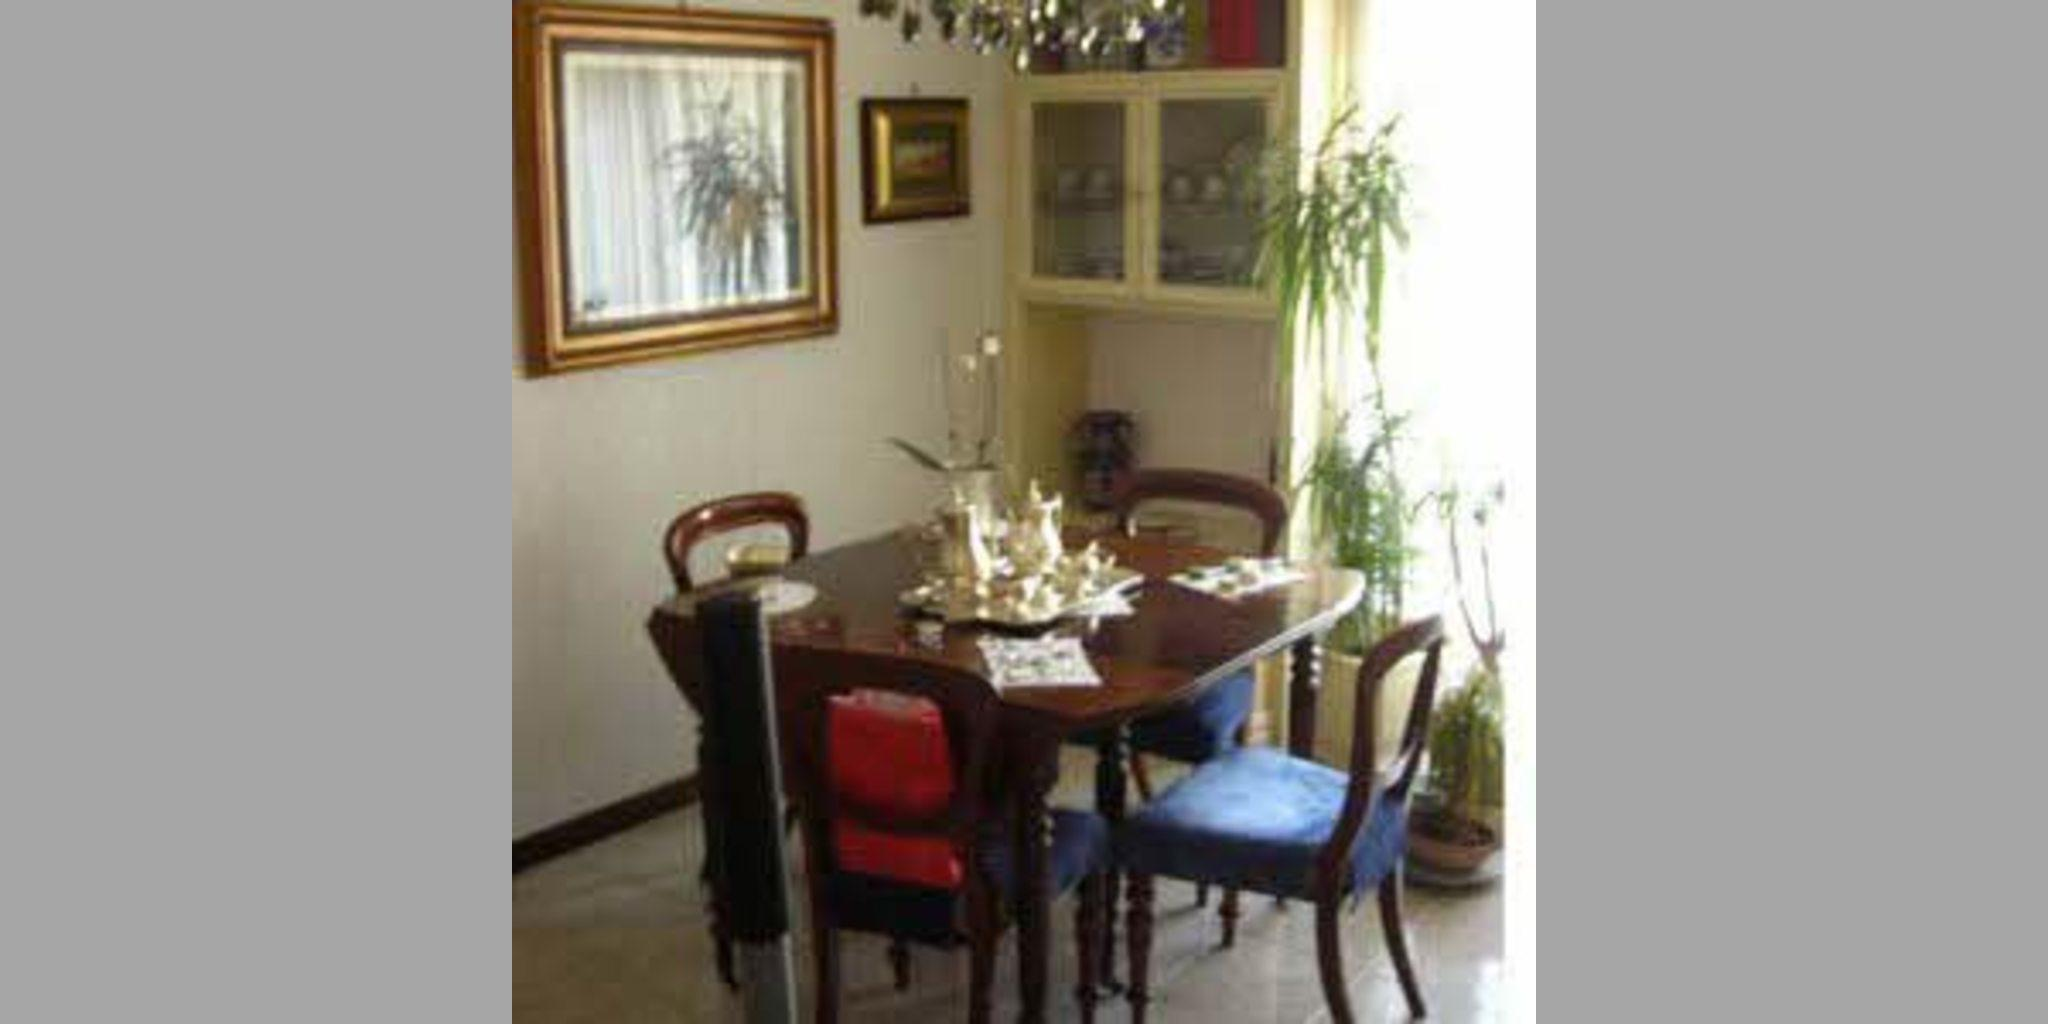 B&B Rome Centre fres Bed and breakfast Centre  Rome